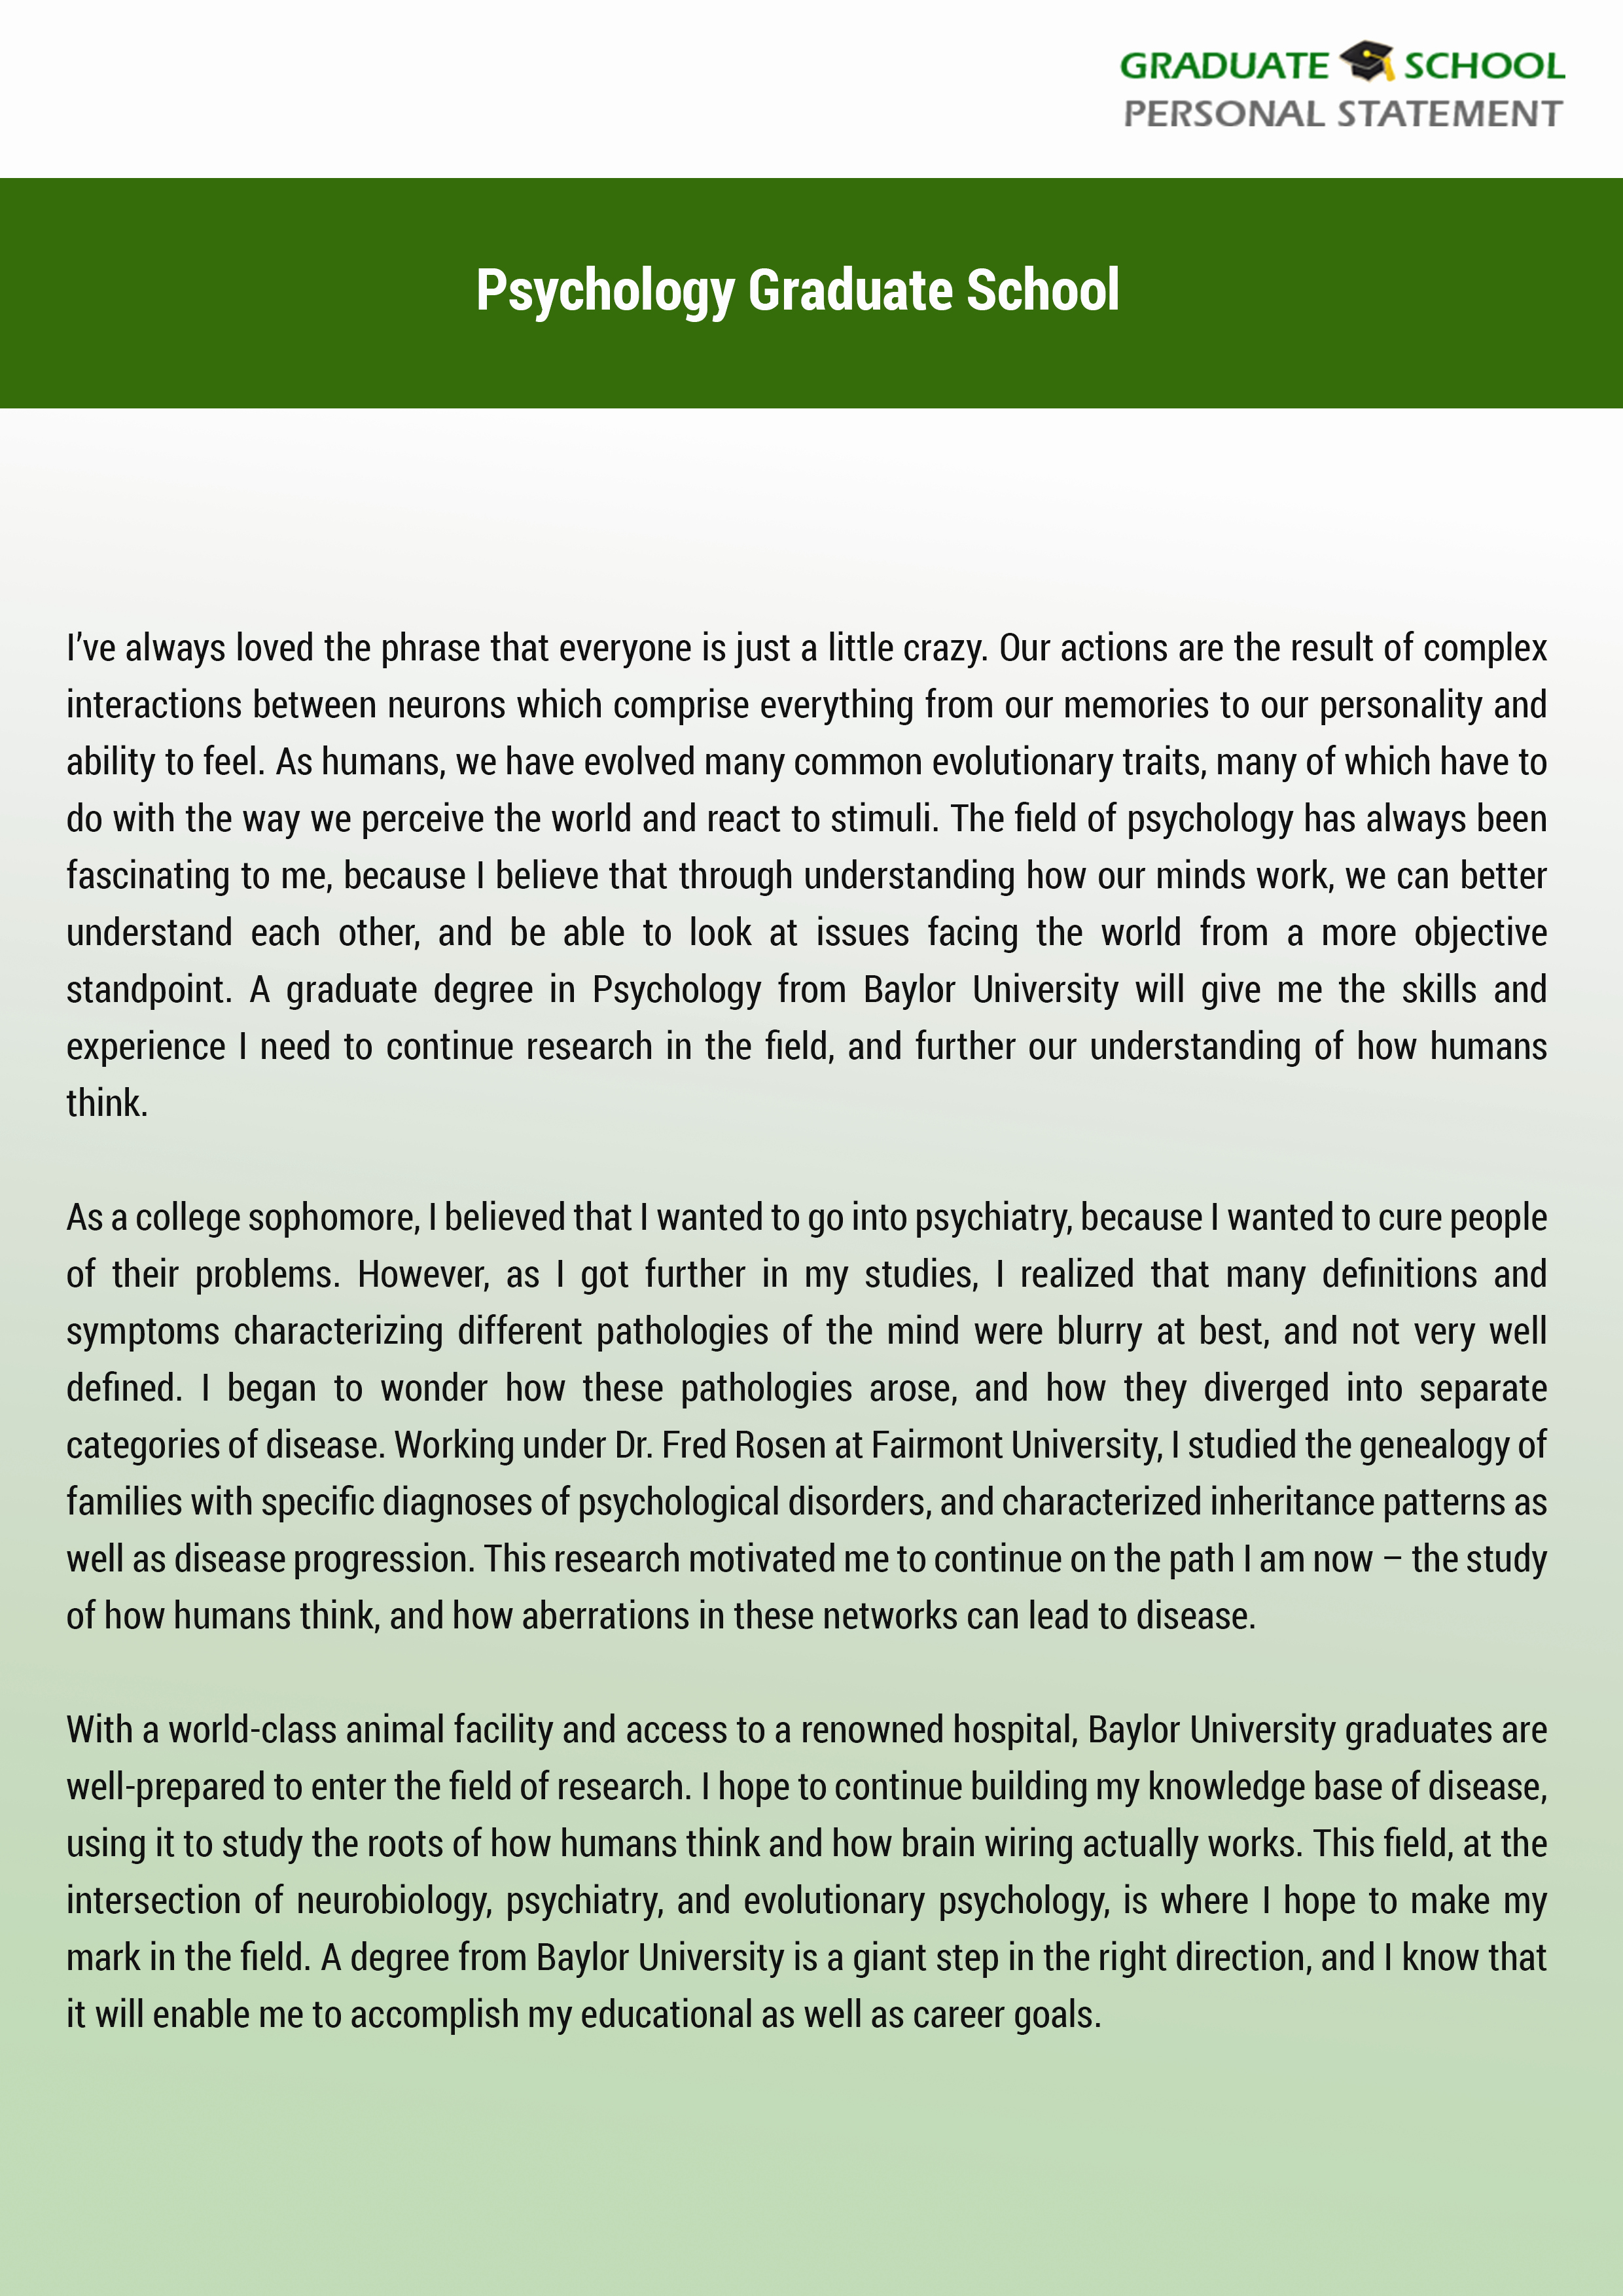 Personal Statement for Masters Degree Fresh Help with Personal Statement Psychology Graduate School